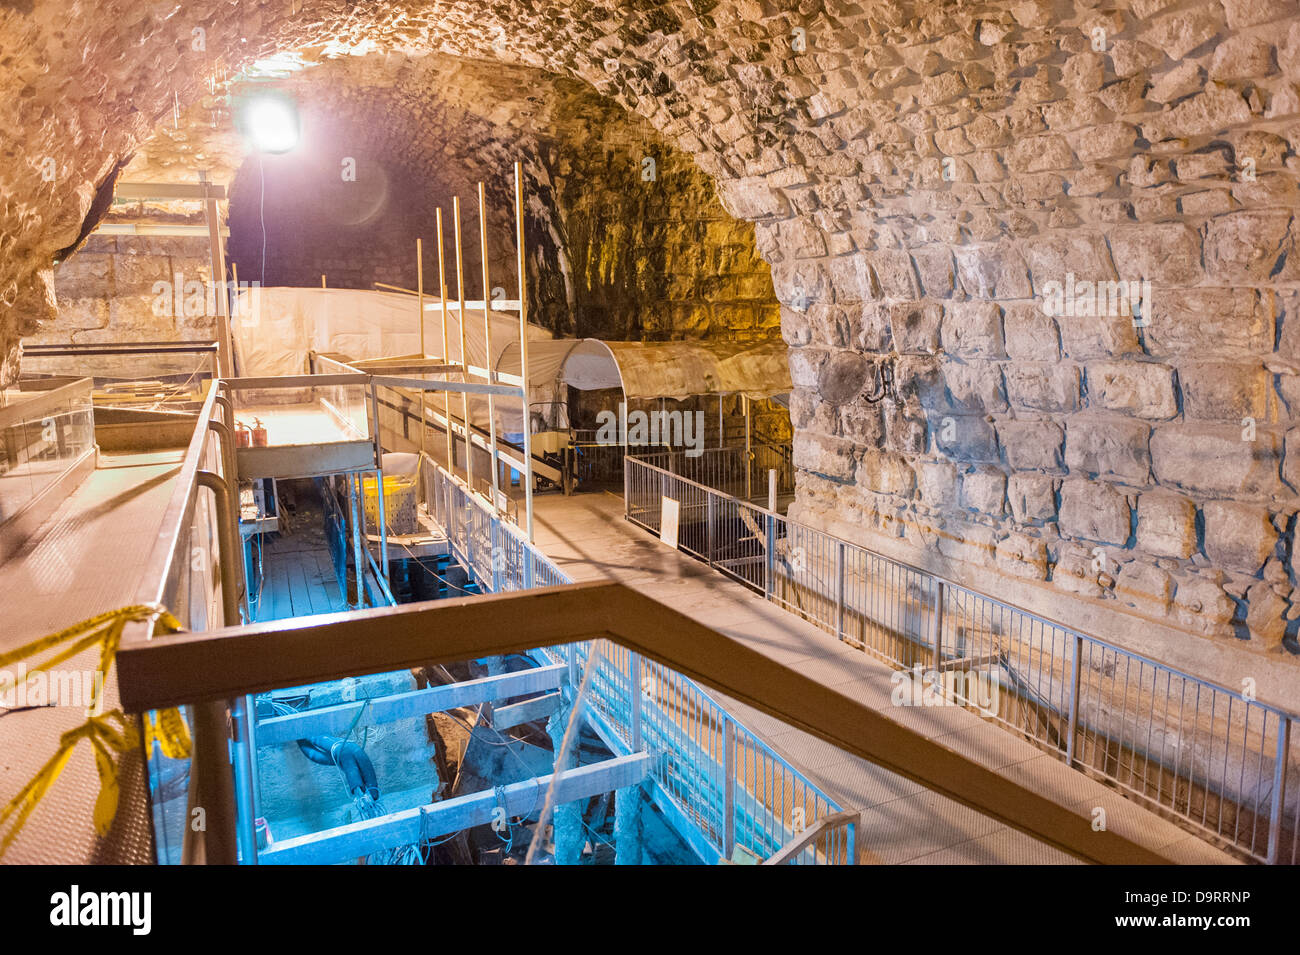 Israel Old City Jerusalem Tunnel Tunnels Western Wailing Wall street level section of Secret Passage anti chamber - Stock Image